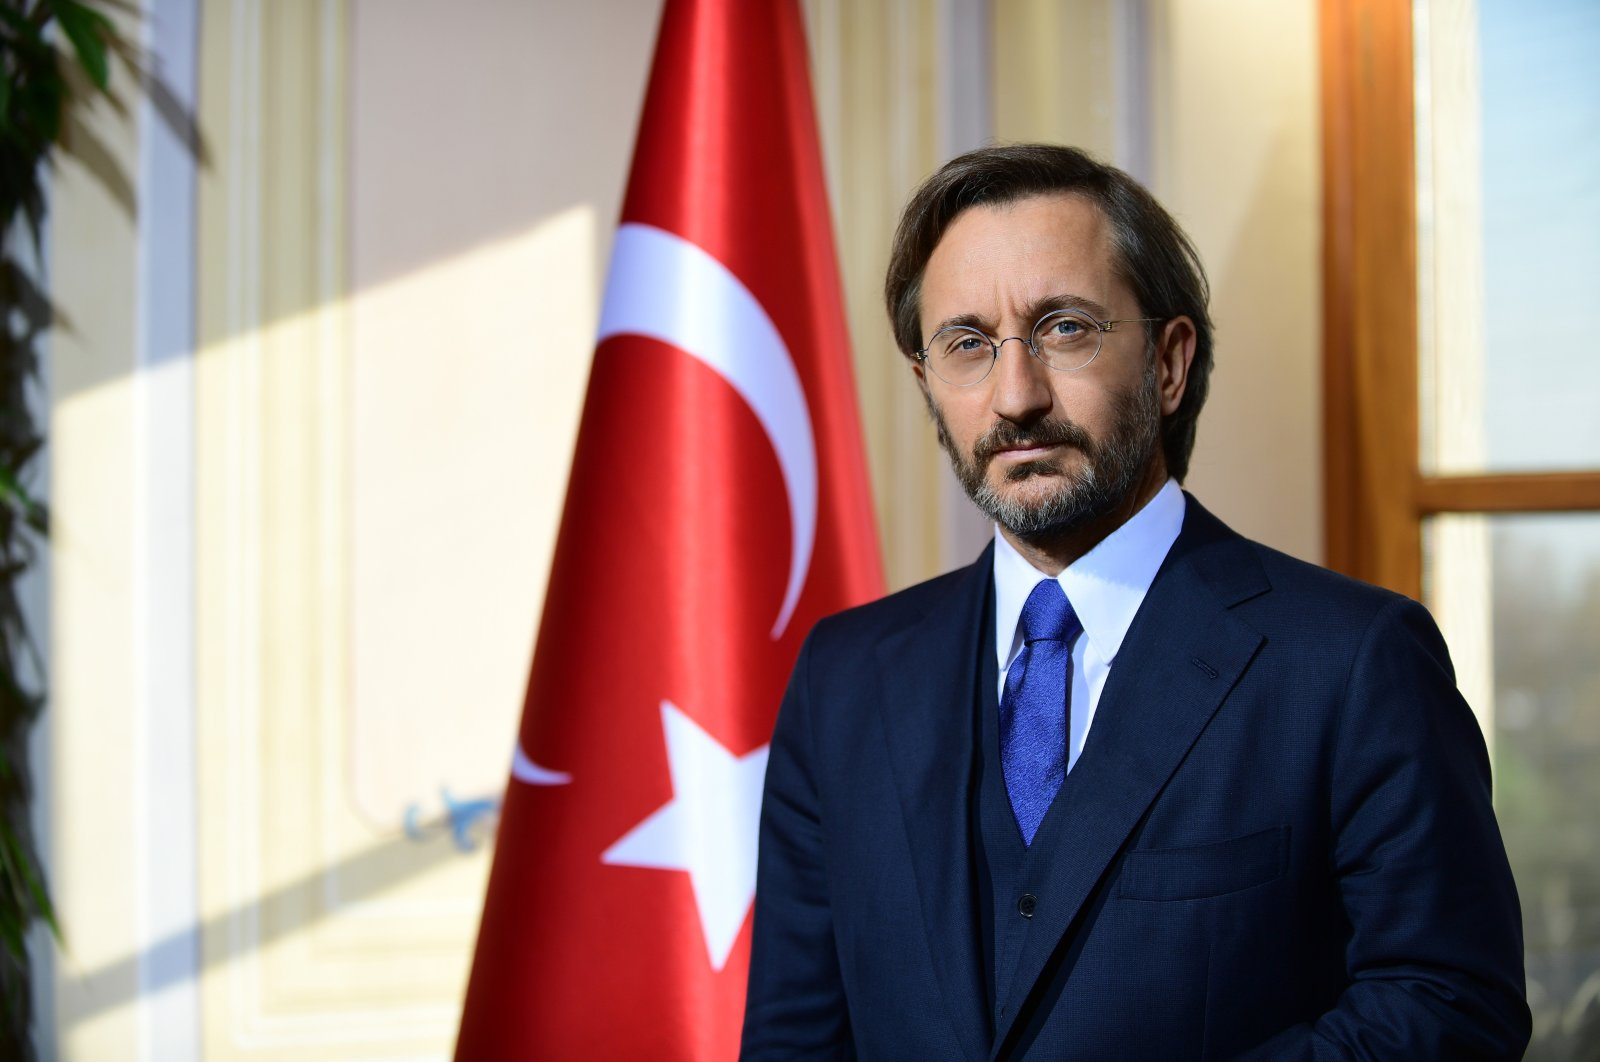 Presidential Communications Director Fahrettin Altun poses near a Turkish flag in this undated file photo. (IHA File Photo)